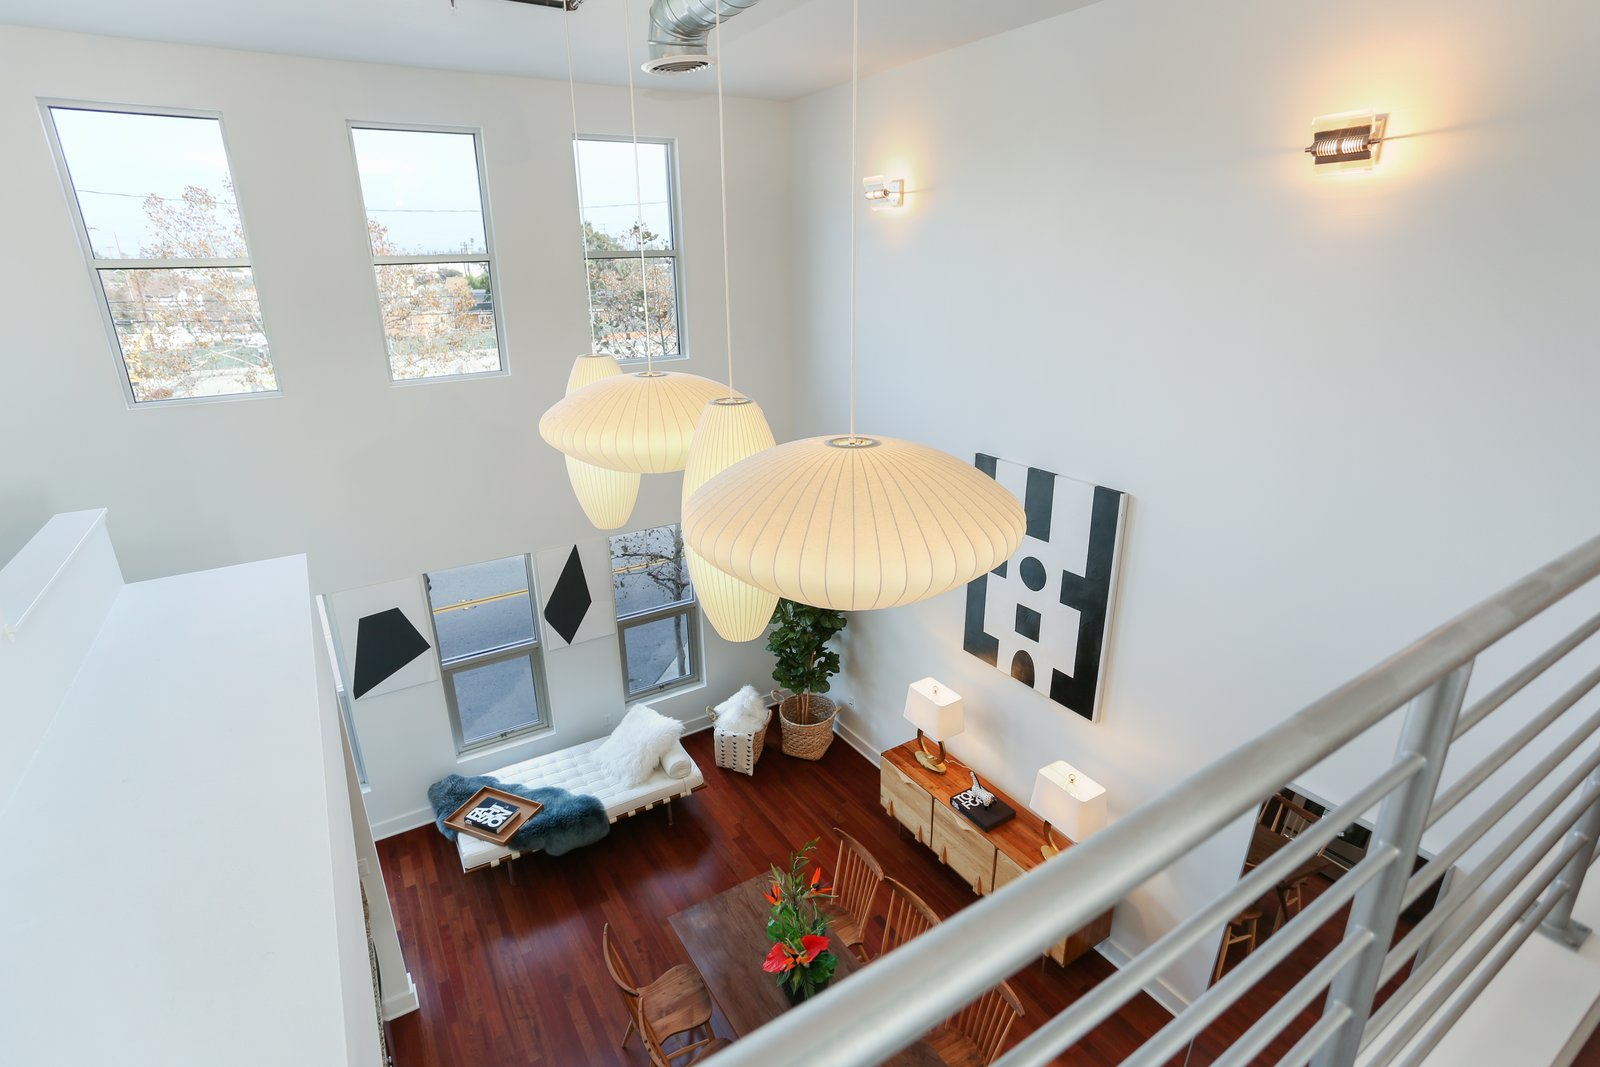 Shown here is the view of the living space from the lofted bedroom. The loft is being sold with the four-piece set of George Nelson bubble lamps that hang from the twenty-foot ceiling.